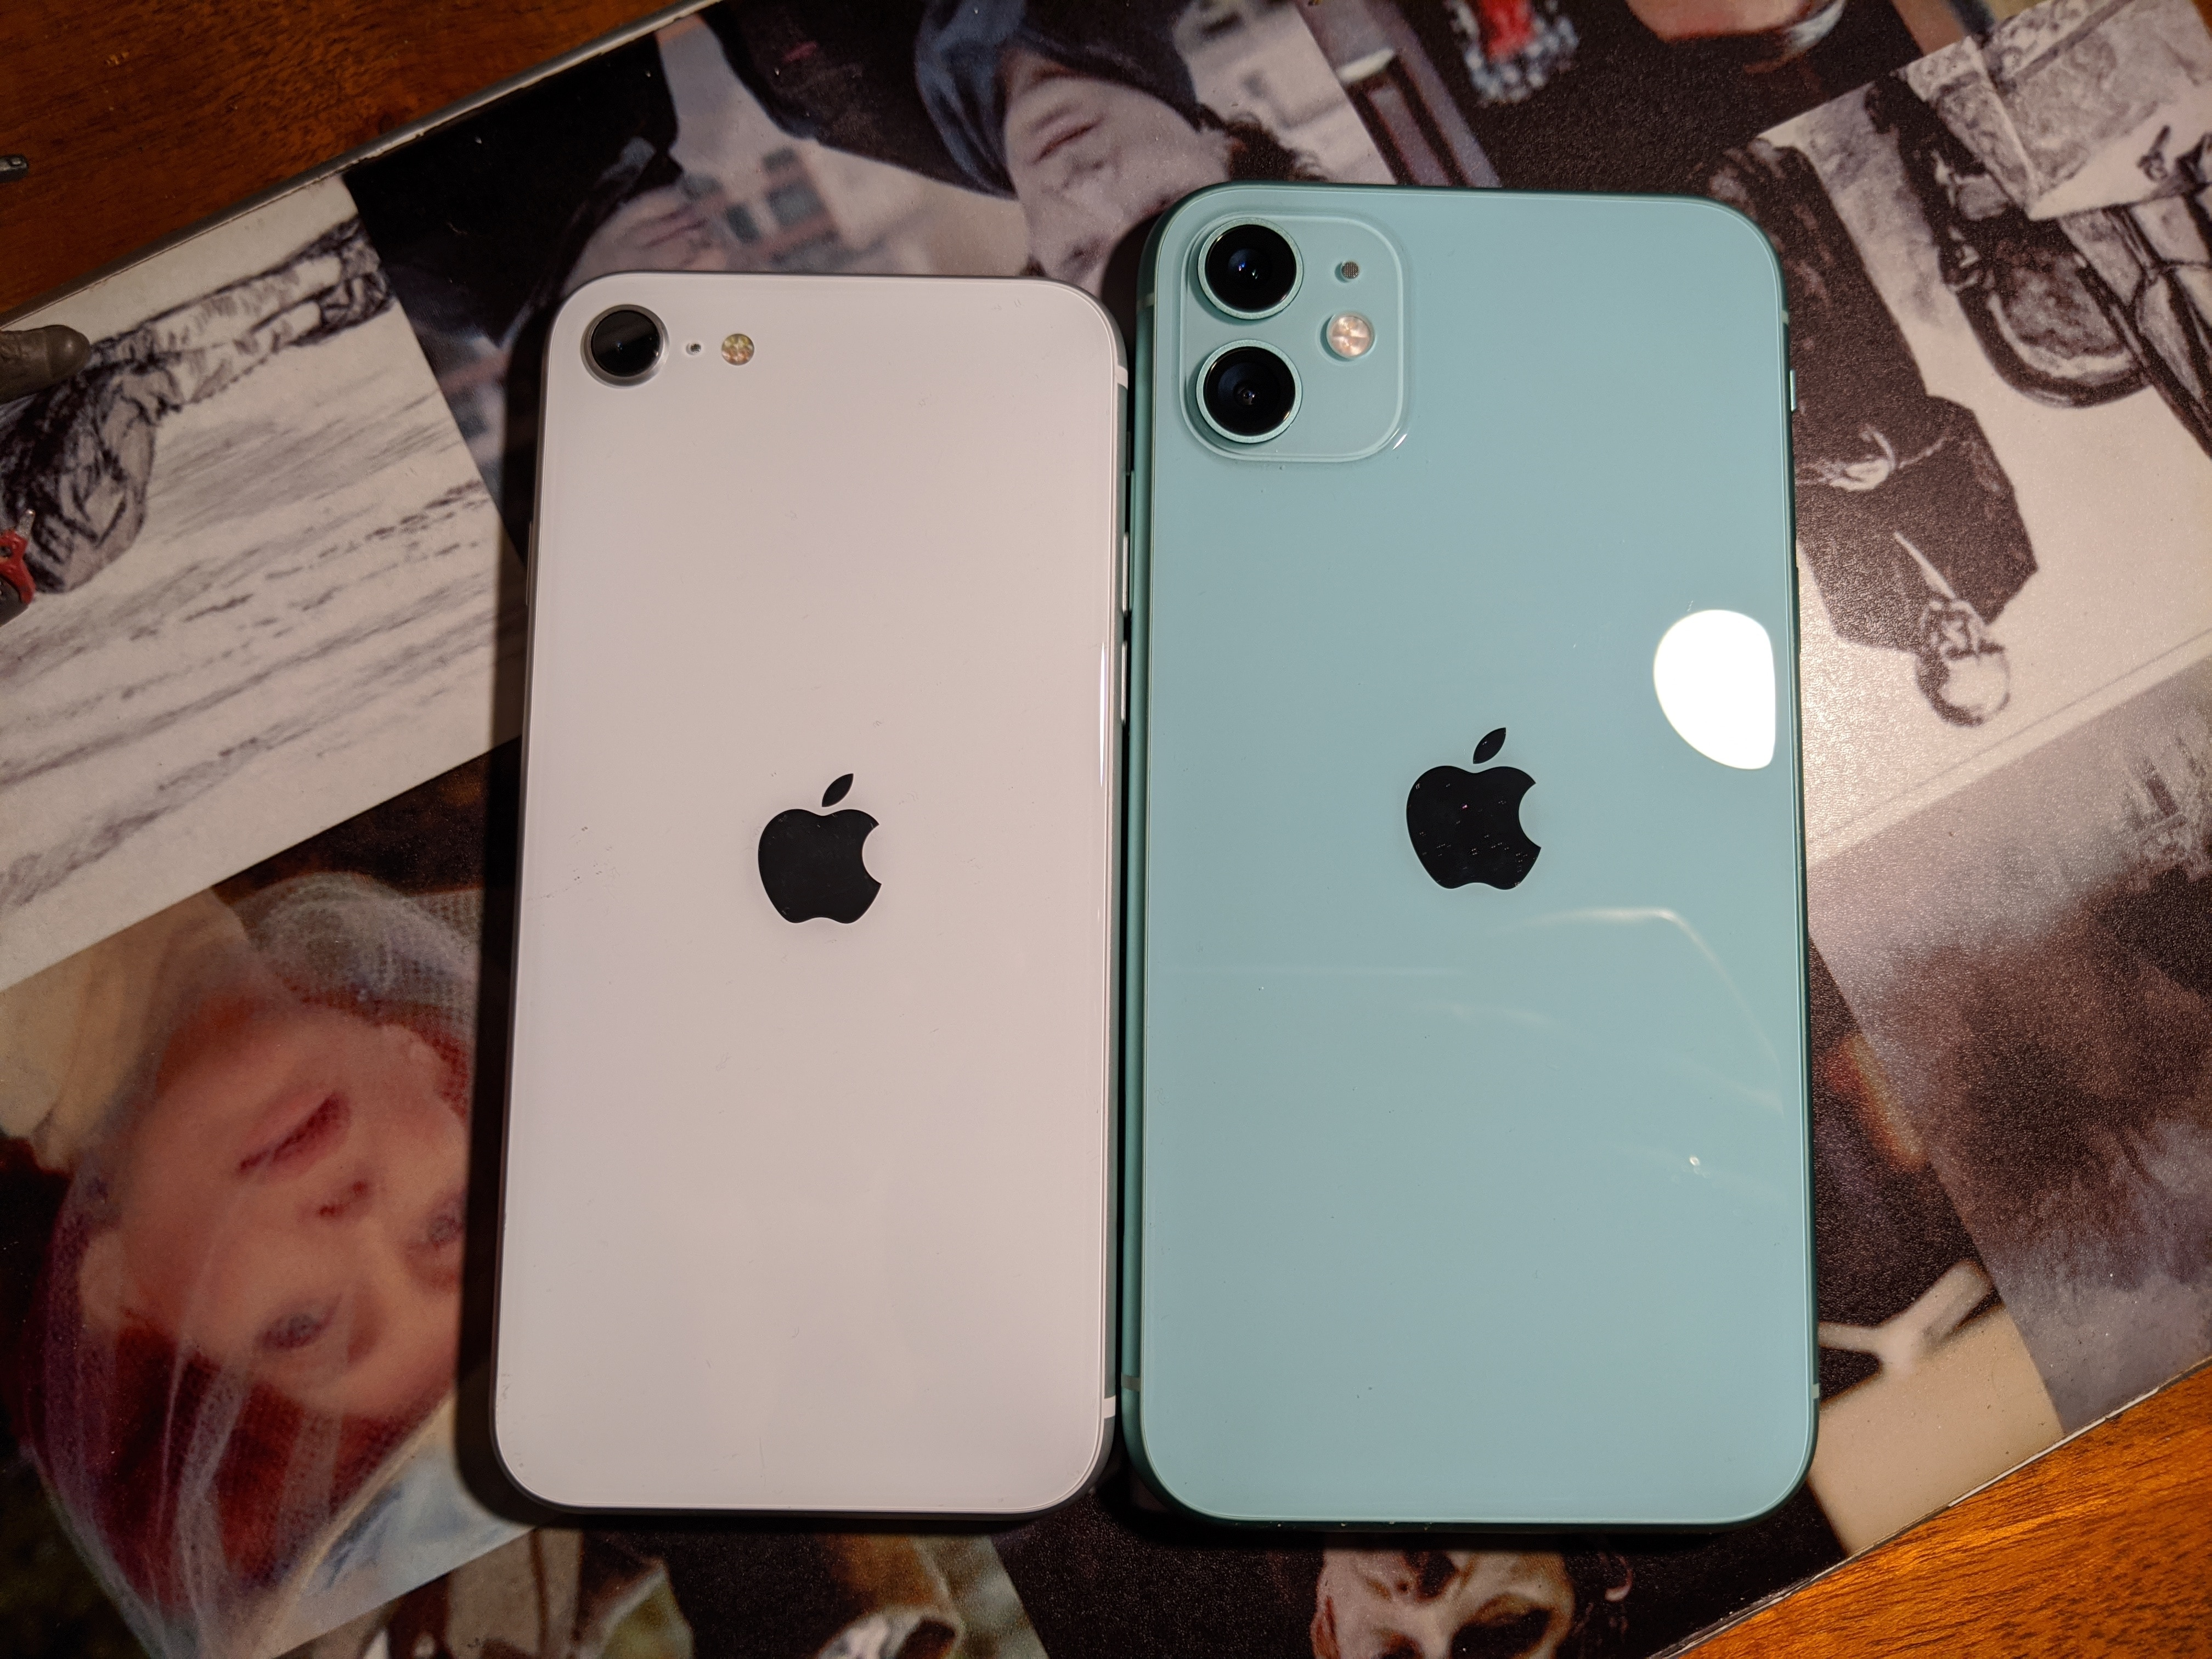 That's how small the iPhone SE is as compared to the iPhone 11.